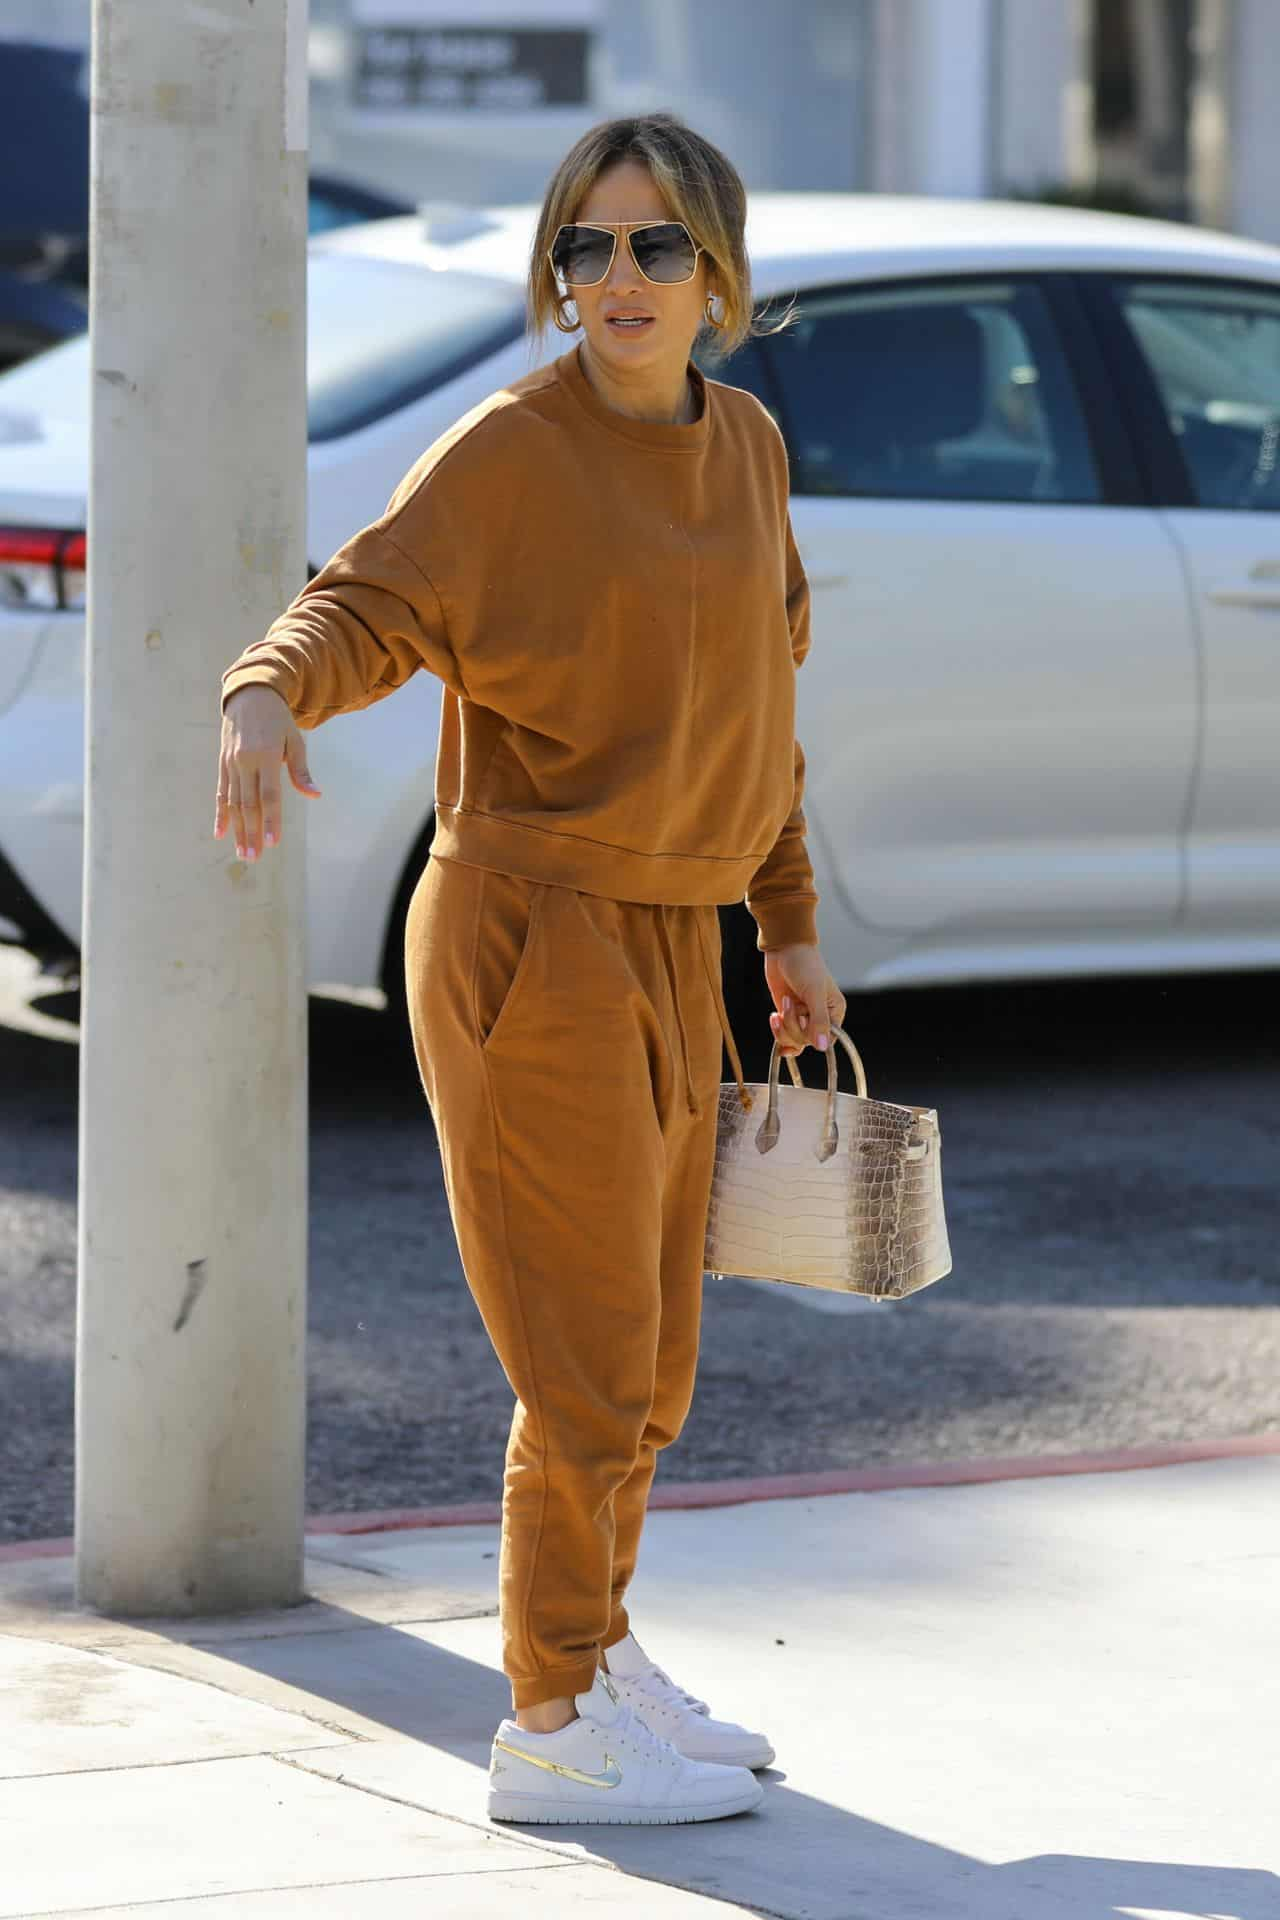 Jennifer Lopez in Comfy Outfit in Shopping for Furniture and Rugs with Daughter Emme